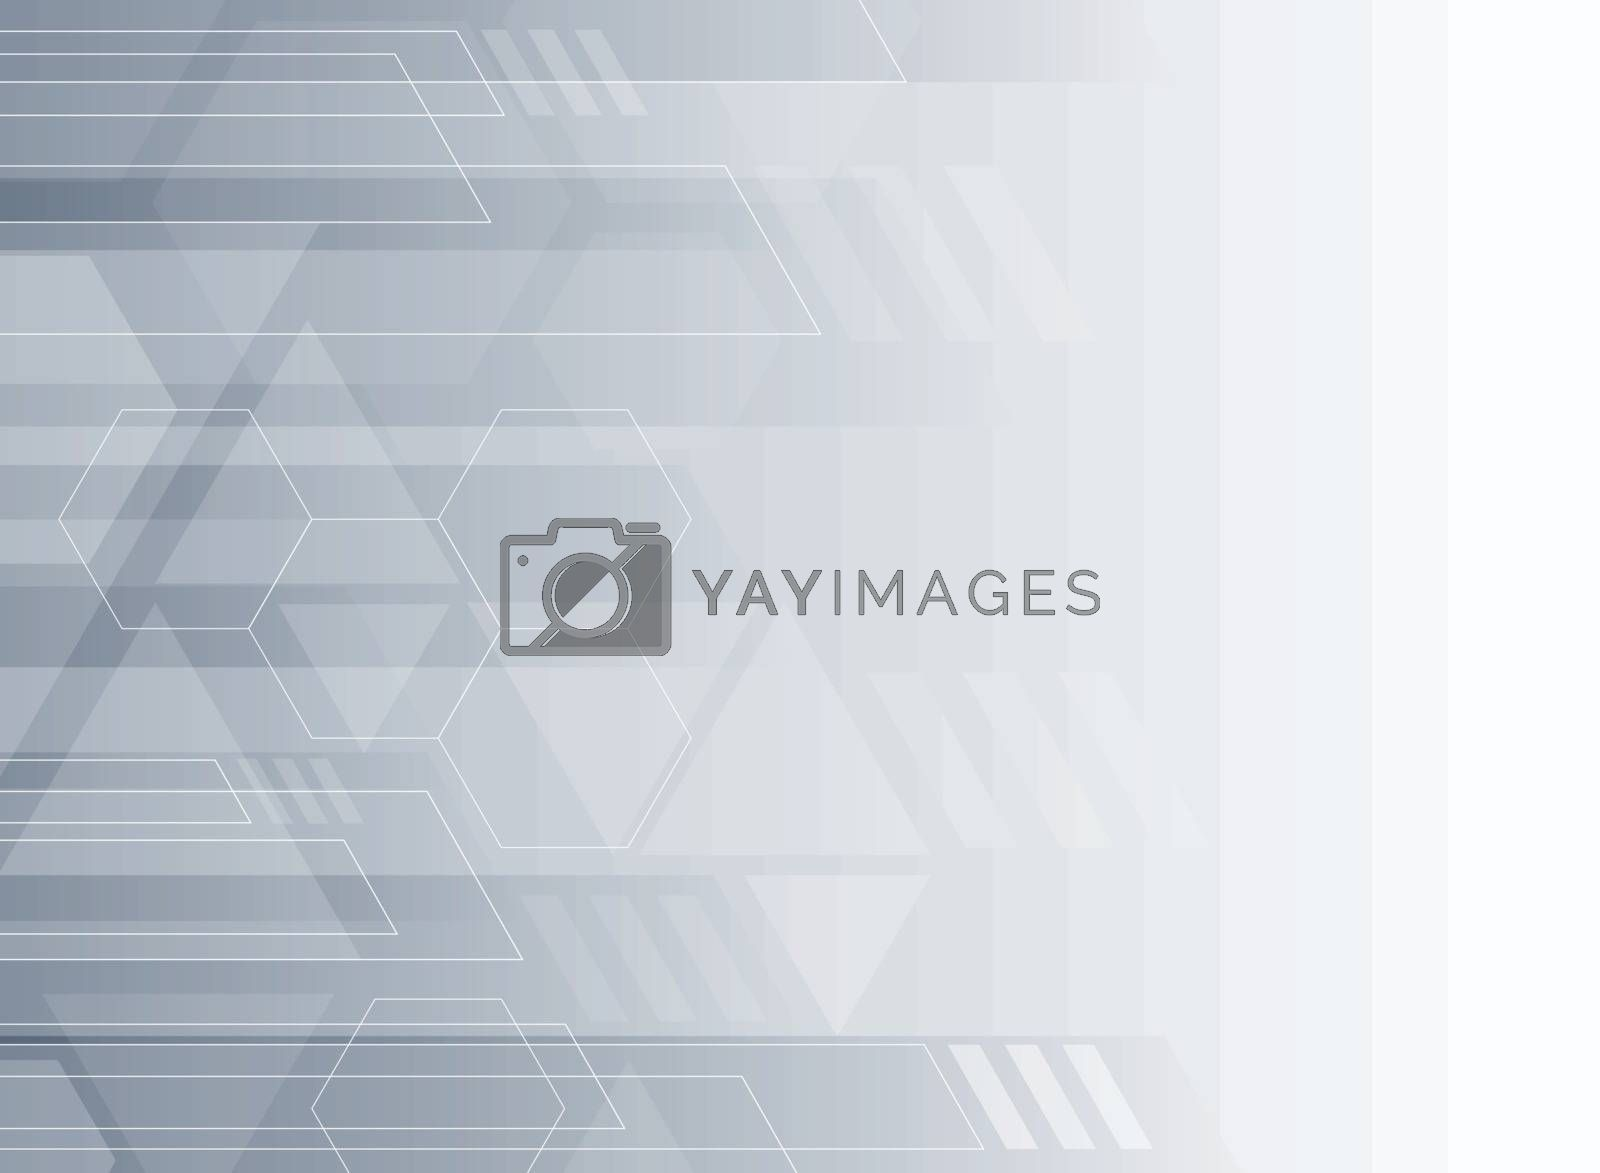 Abstract technology gray and white geometric corporate design background. Vector illustration